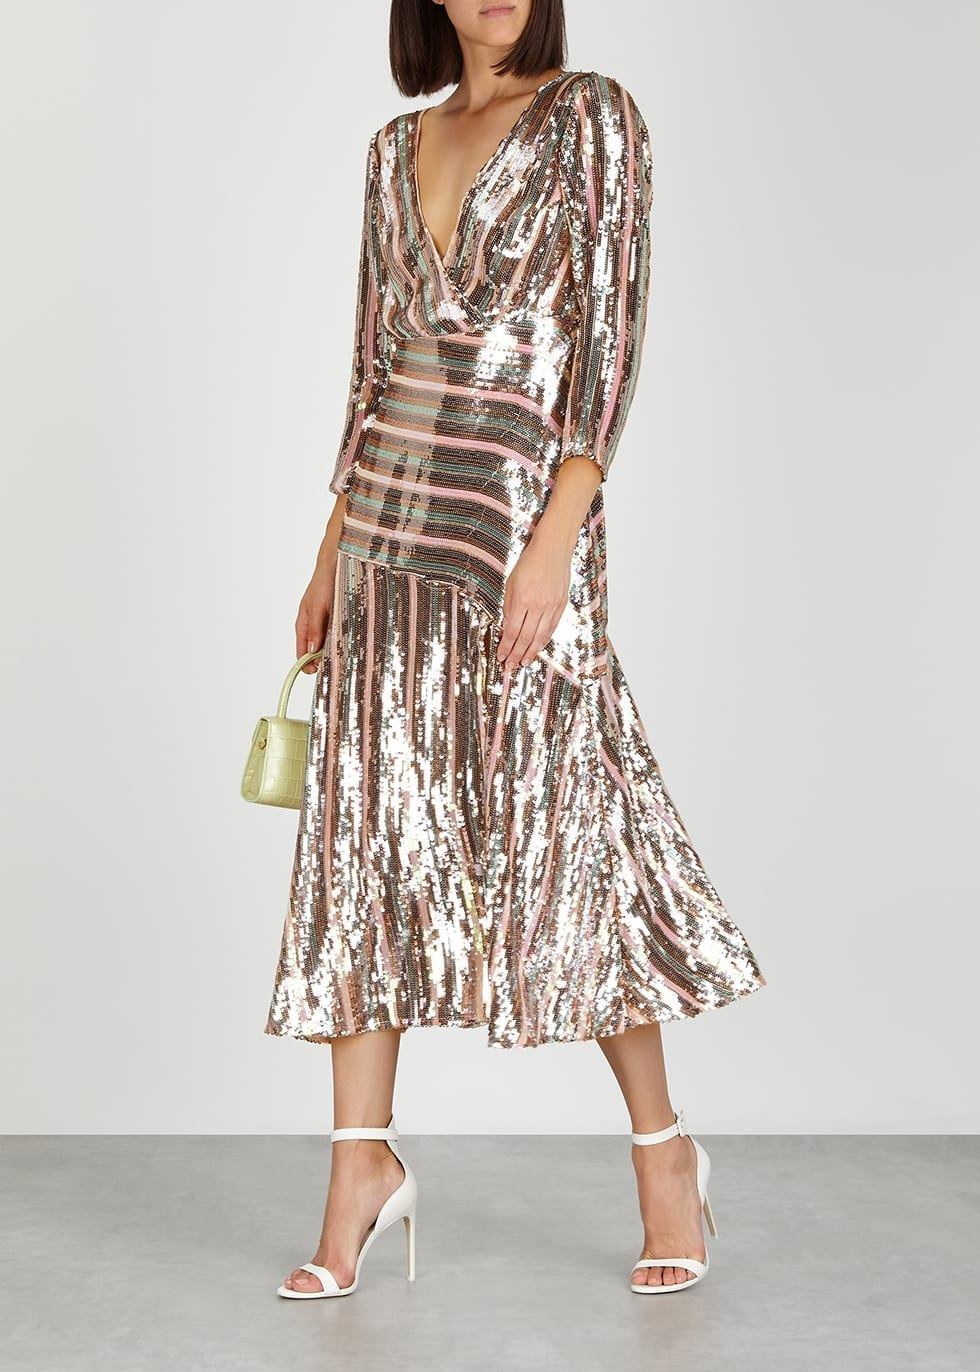 RIXO Tyra Striped Sequin Midi Dress